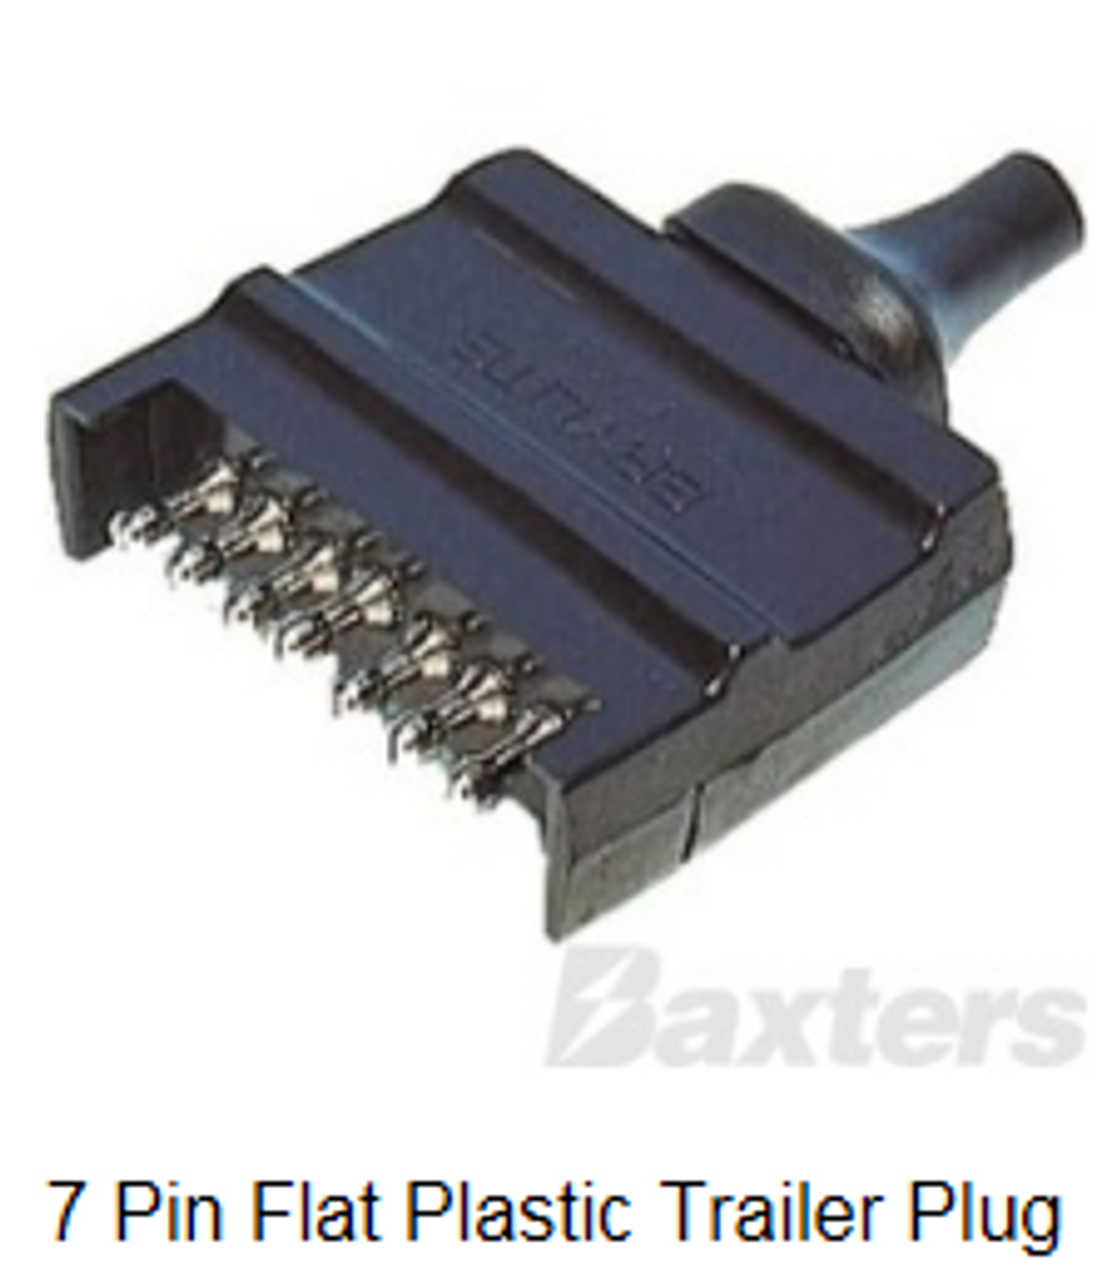 Trailer plug also supplied. 7 pin male flat trailer plug x 1